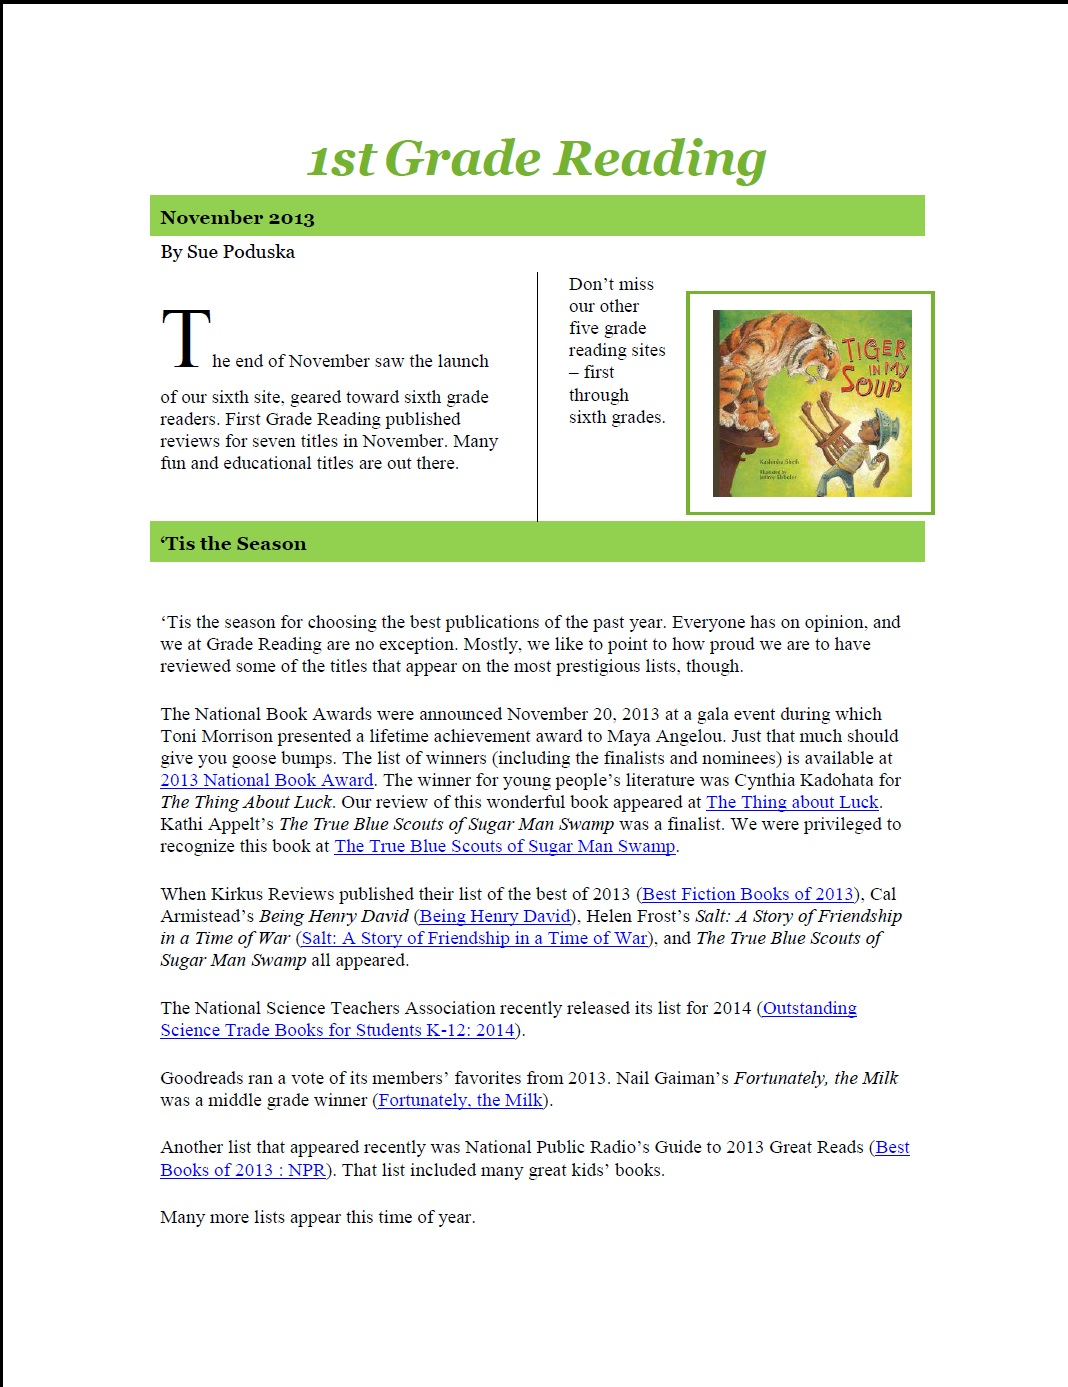 5th grade newsletter template - gradereading because reading changes lives